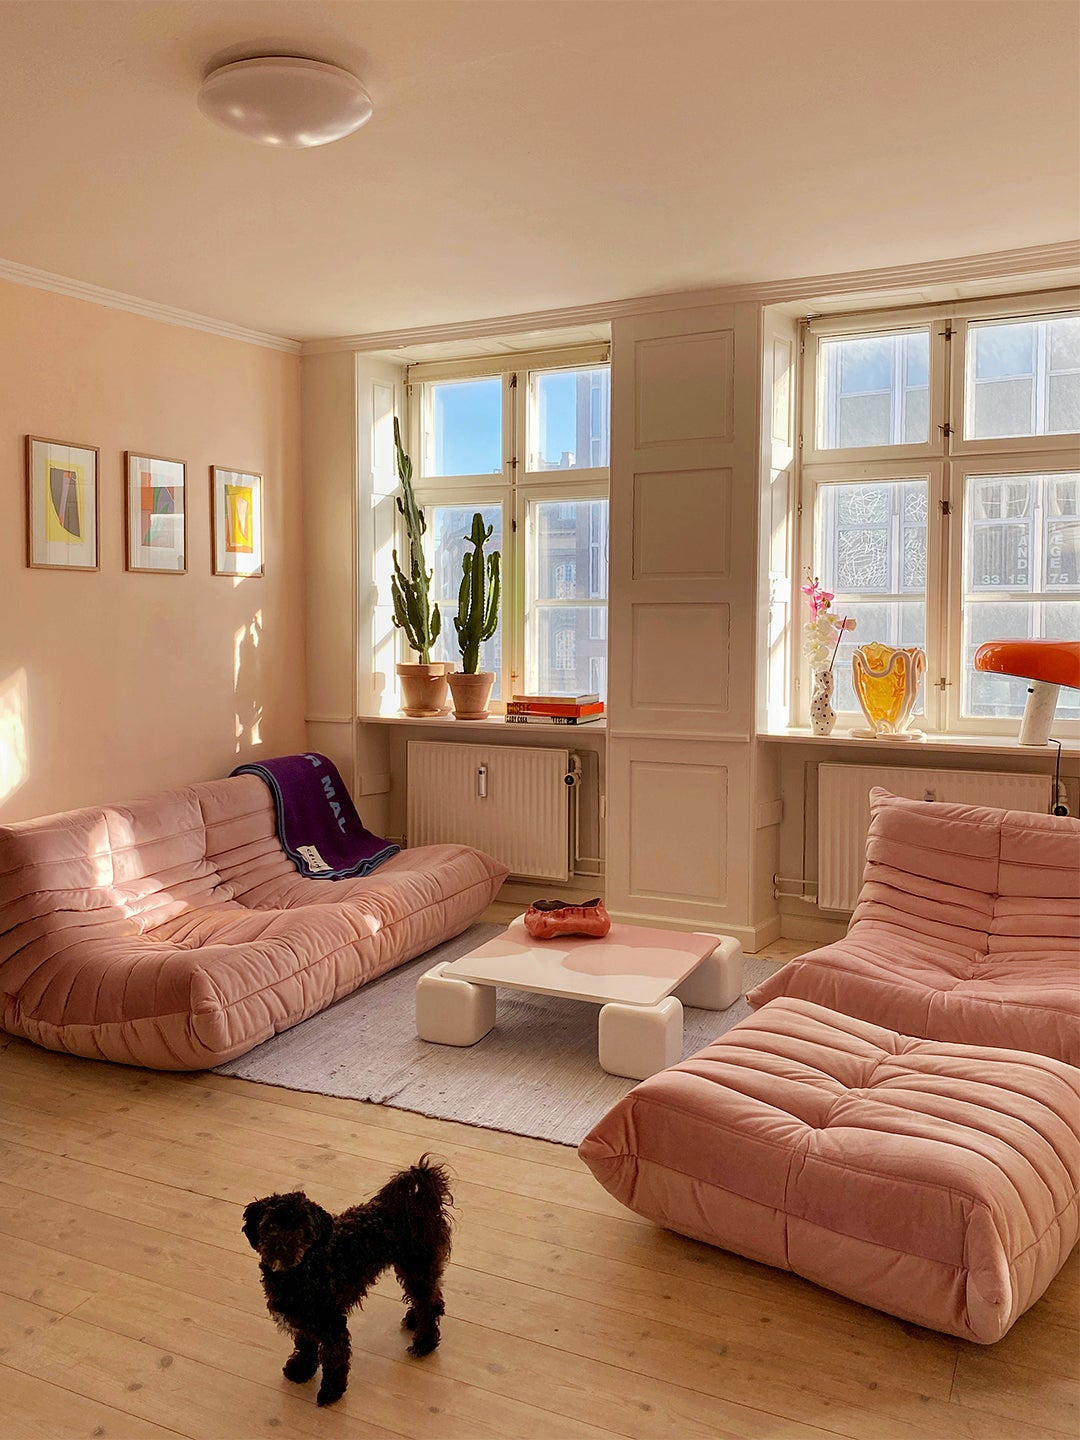 Living room with pink sofas